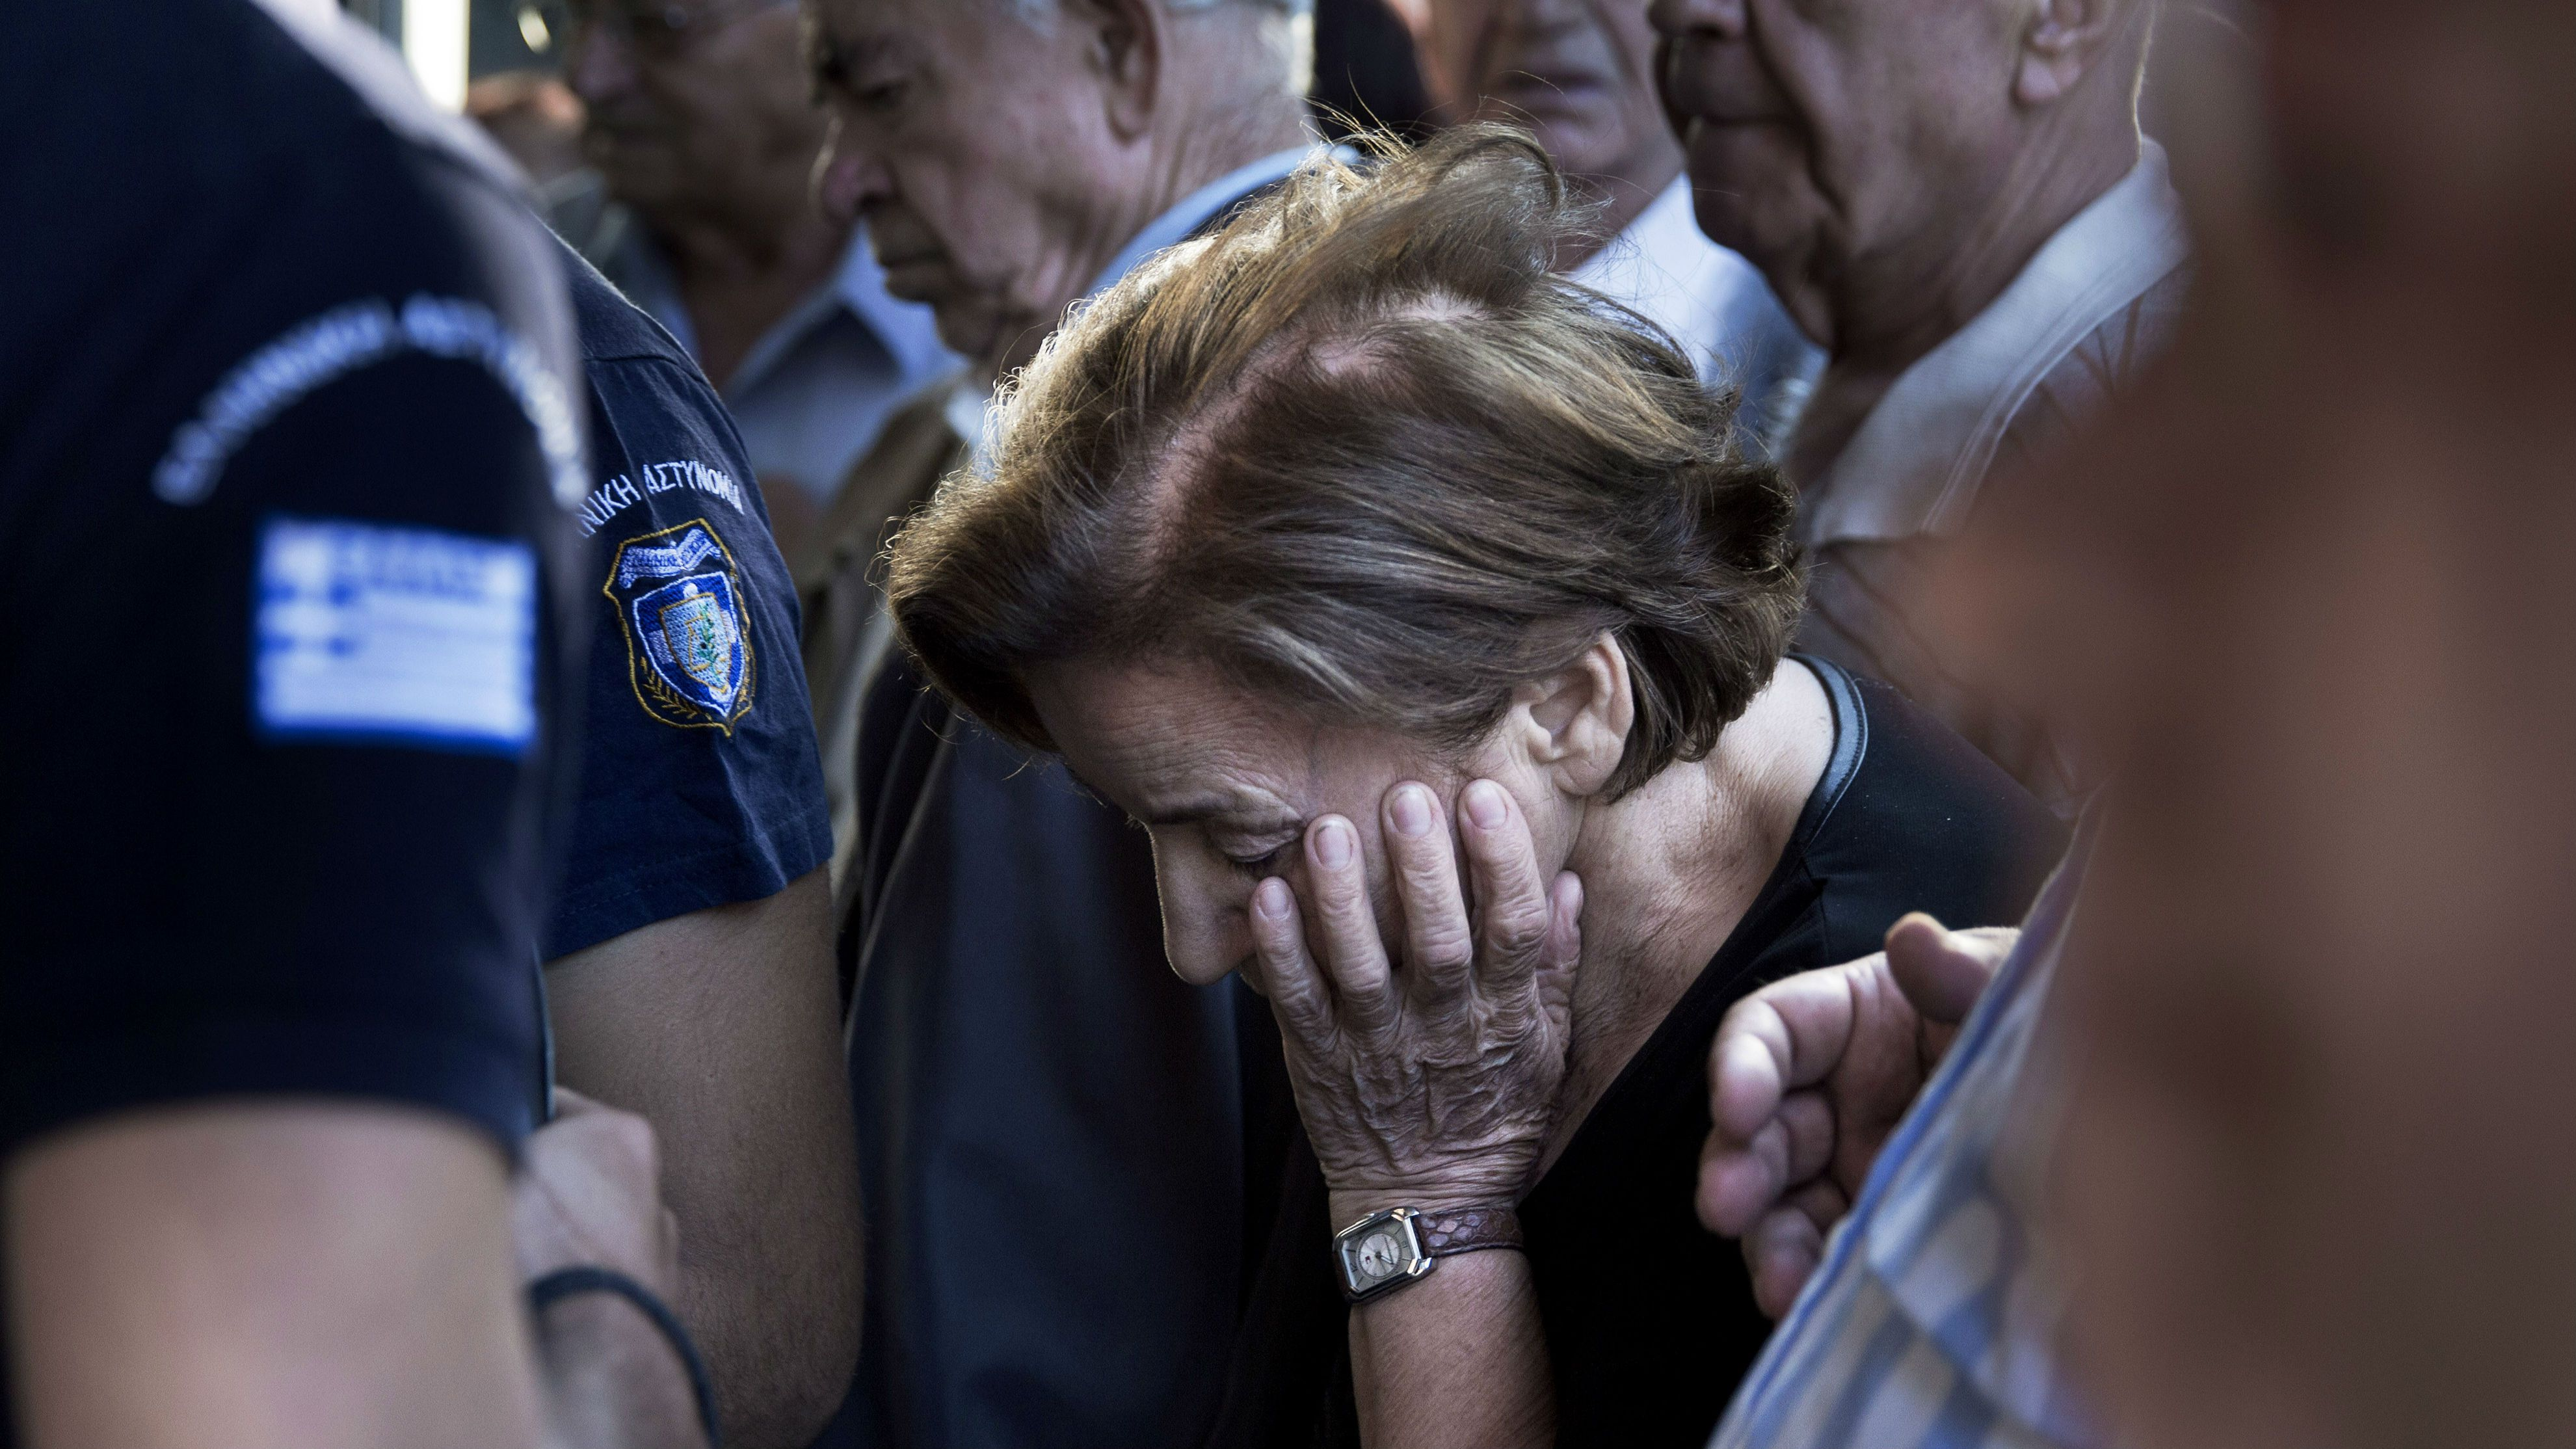 Pensioners crowd the entrance of bank in Athens, Wednesday, July 1, 2015. Long lines formed as bank branches around the country were ordered by Greece's government to reopen Wednesday to help desperate pensioners without ATM cards cash up to 120 euros ($134) from their retirement checks. (AP Photo/Petros Giannakouris)